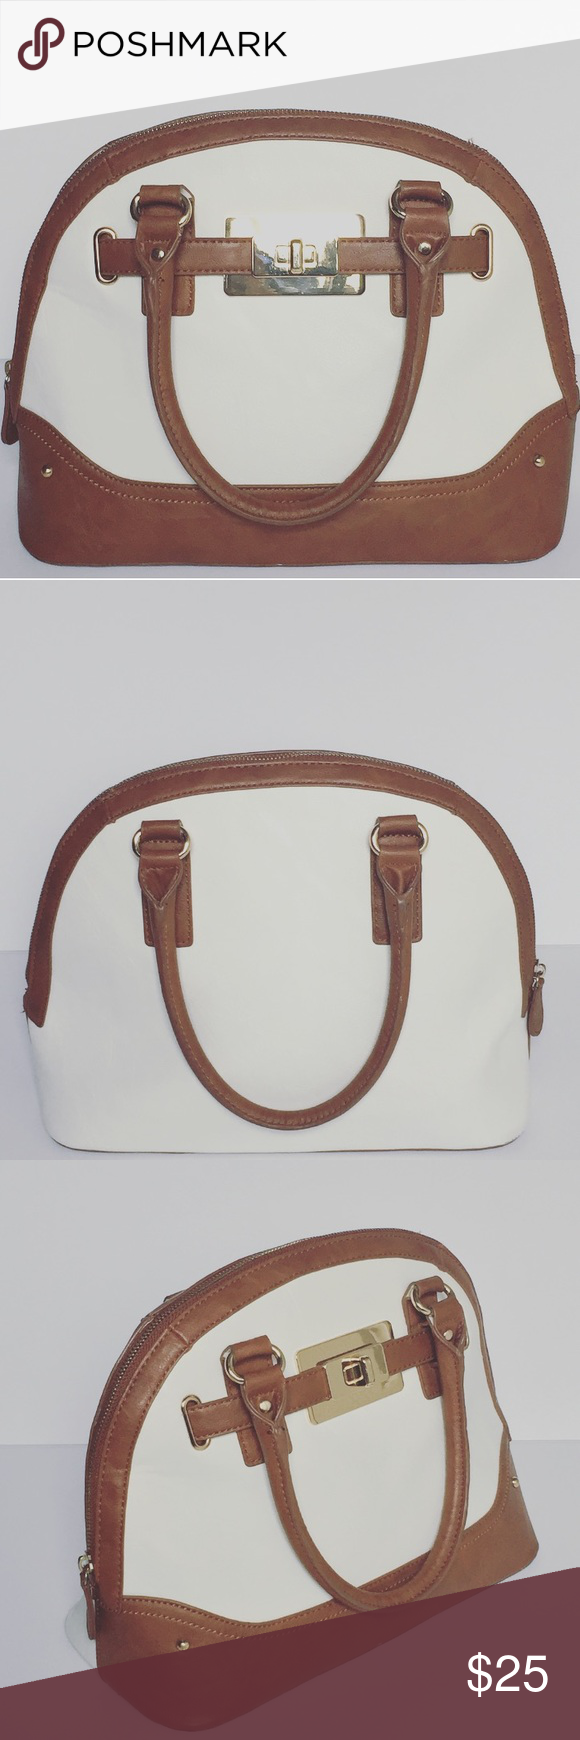 Aldo Bag Gently used beautiful off white/cream bag with brown faux leather detailing. It's hold a lot of items including an iPad! It's great for all year round. Open to negotiation and bundle deals. Aldo Bags Satchels